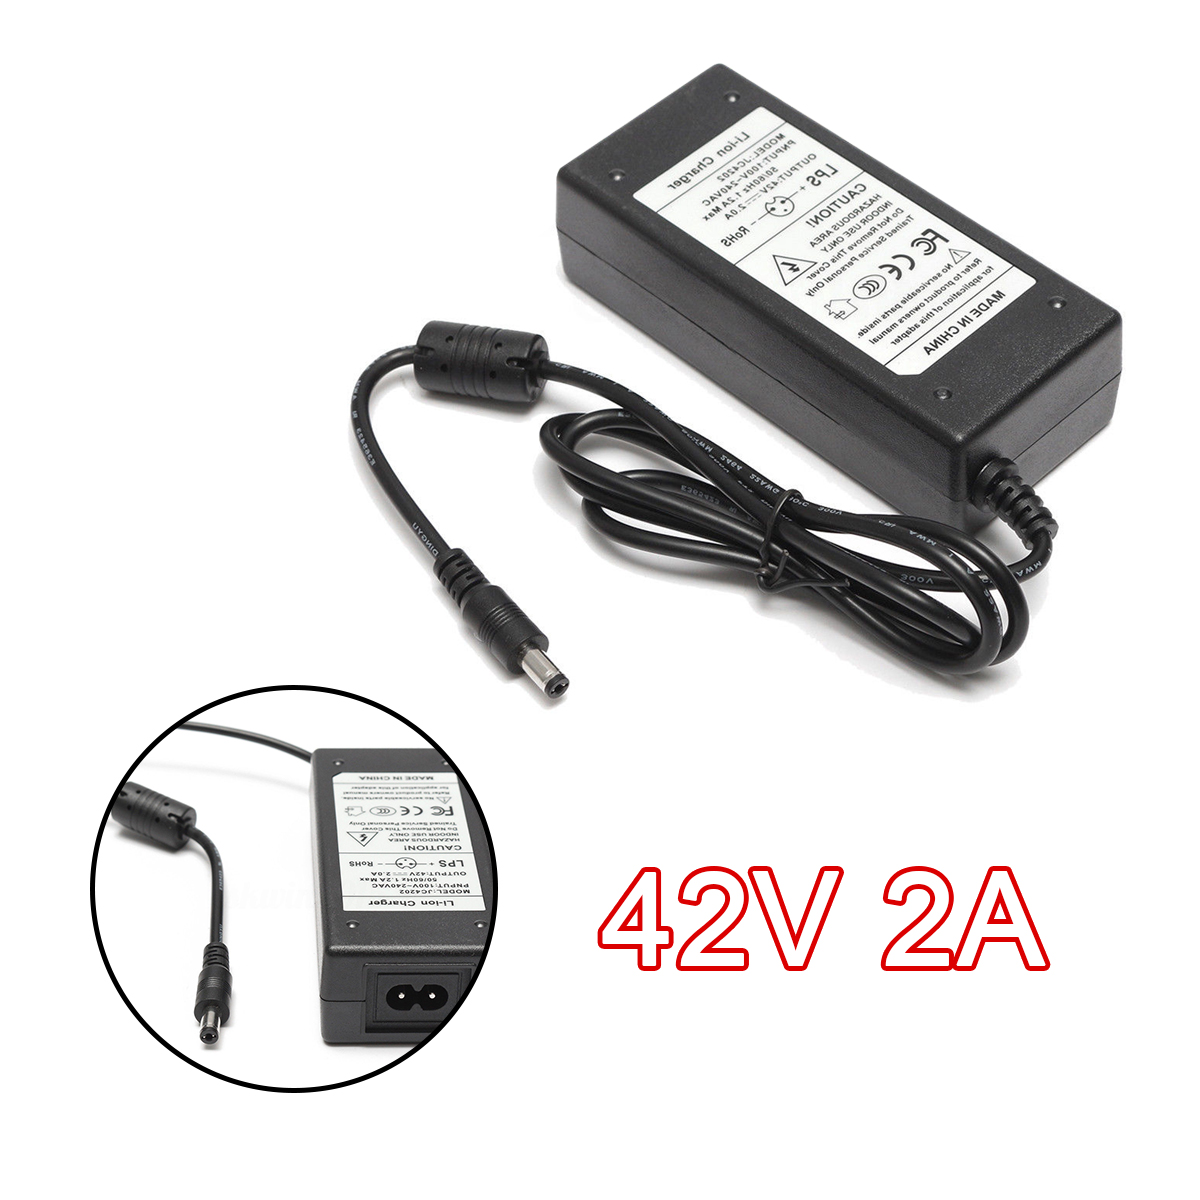 1Pcs Scooter Charger Adapter 42V 2A Power Supply Battery Charger Adapter For Electric Scooter Skateboard Accessories